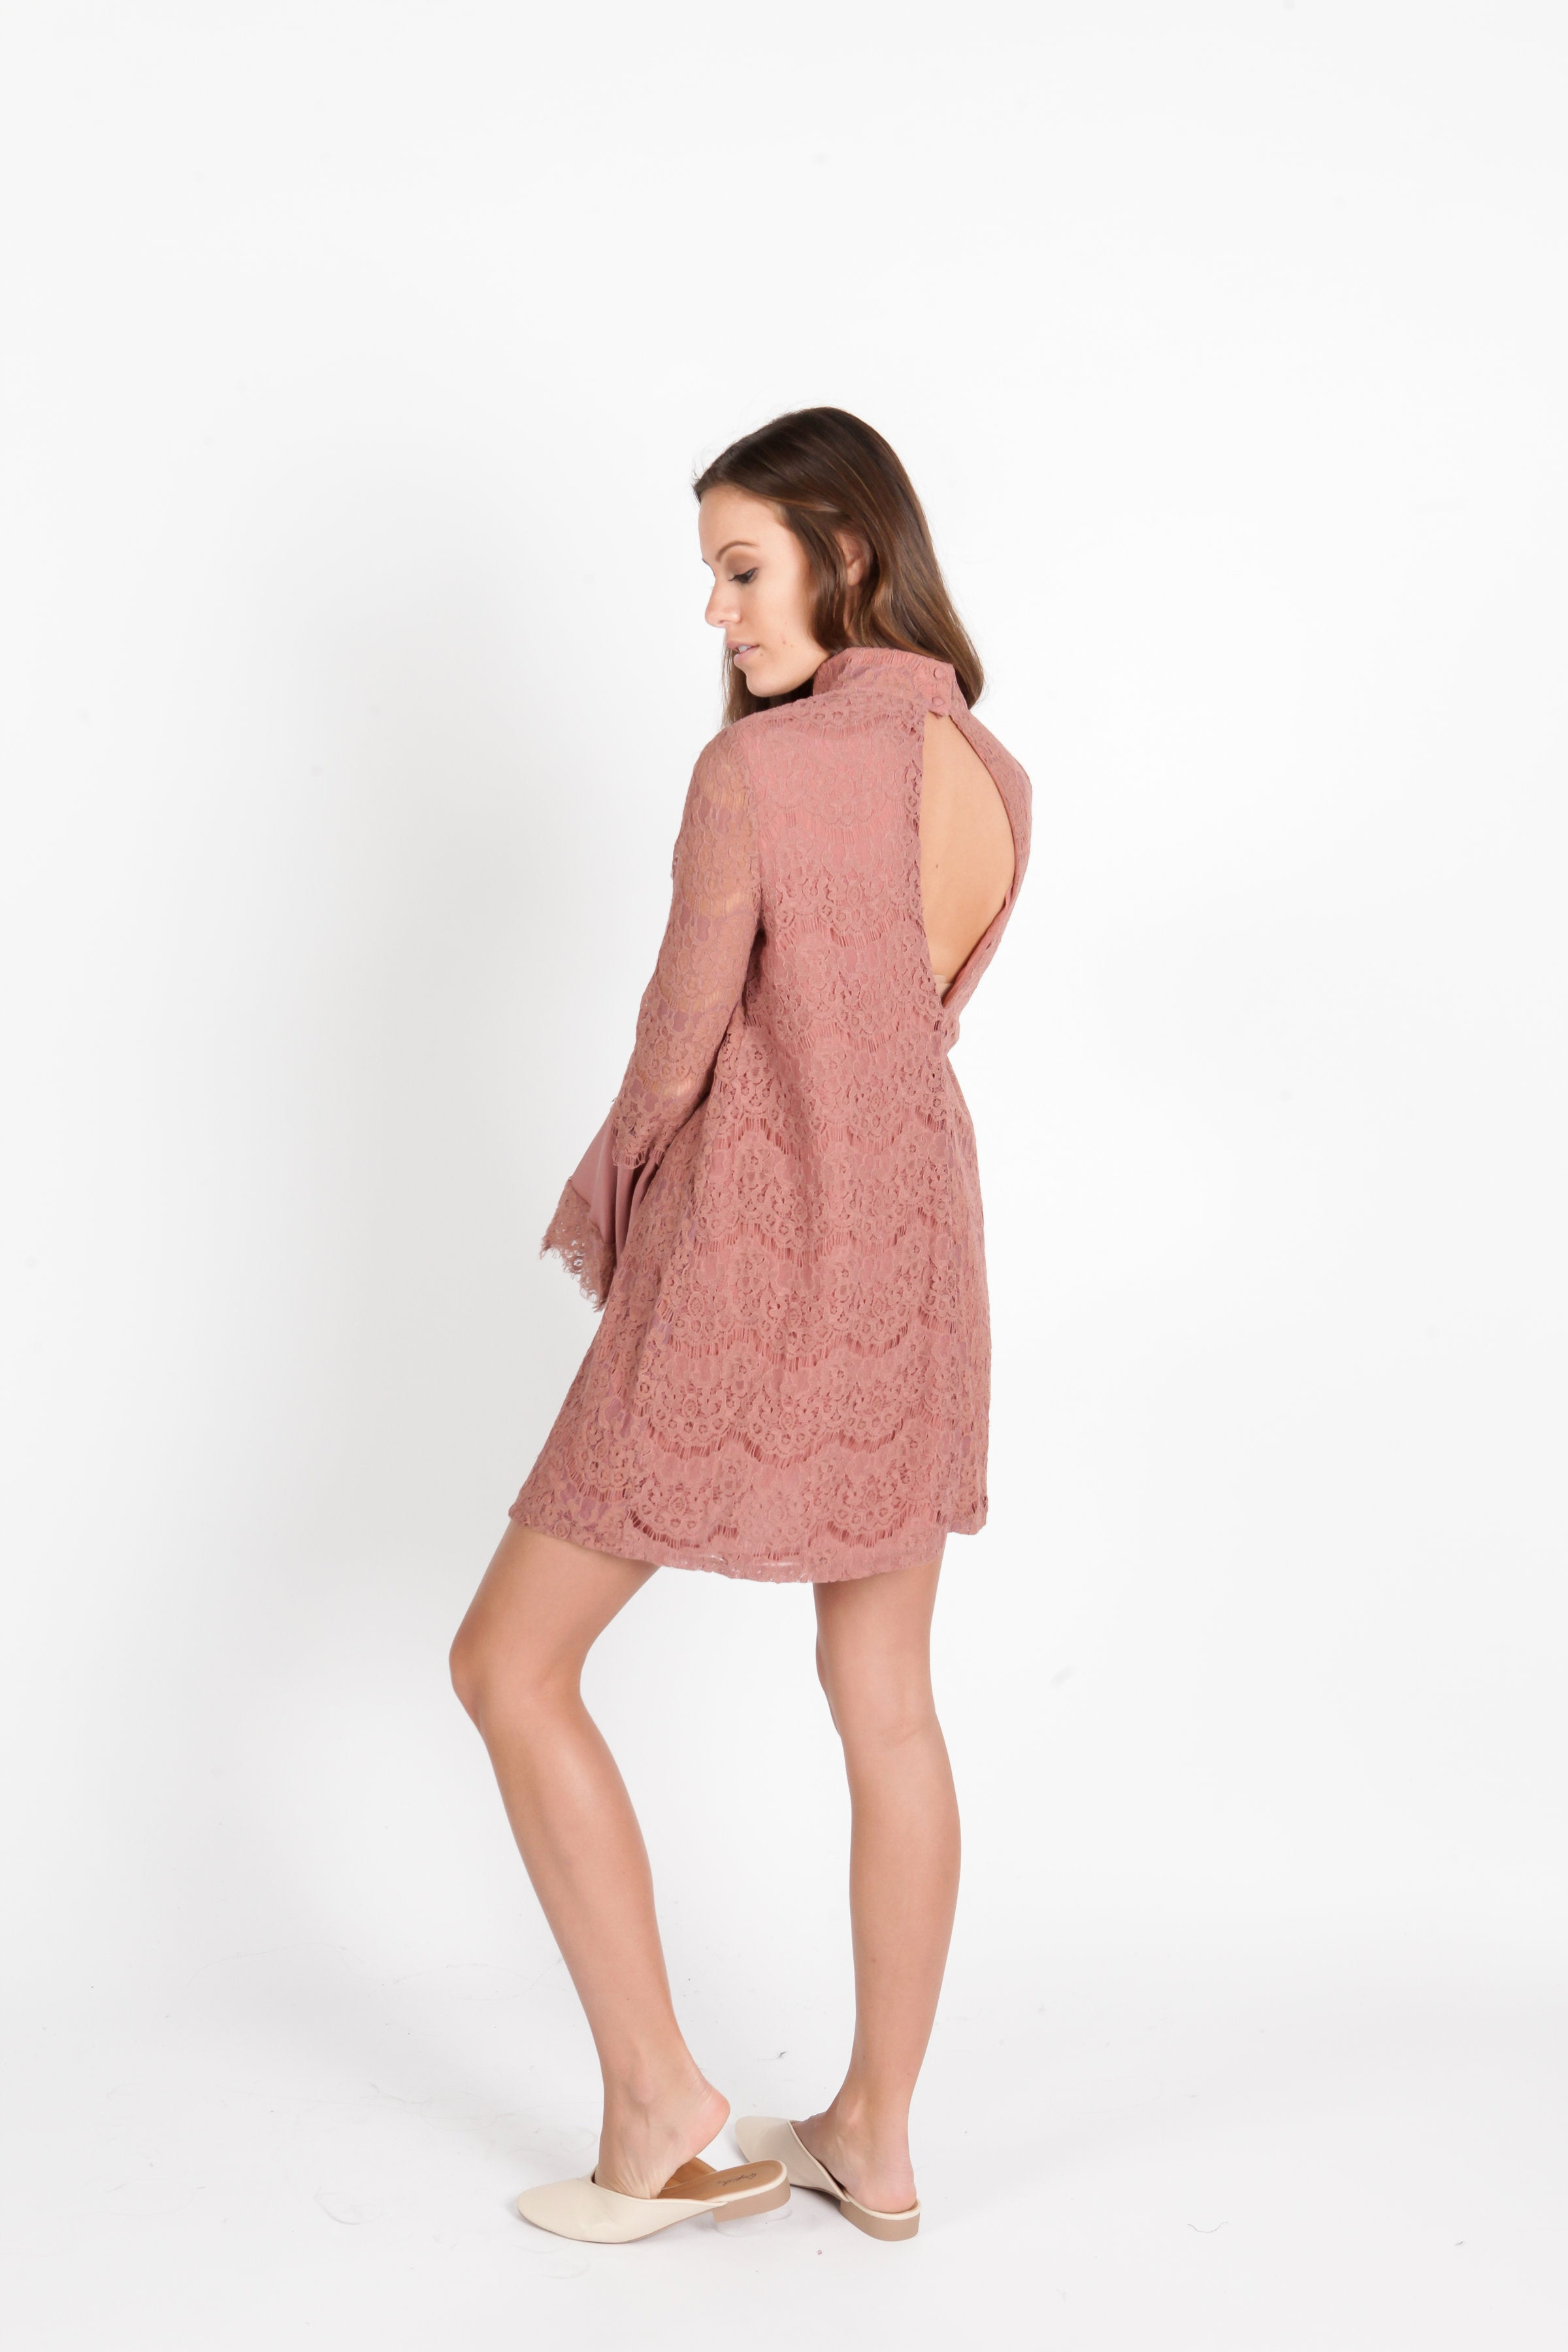 Ayana Lace Dress - Rose Dresses - Vinnie Louise